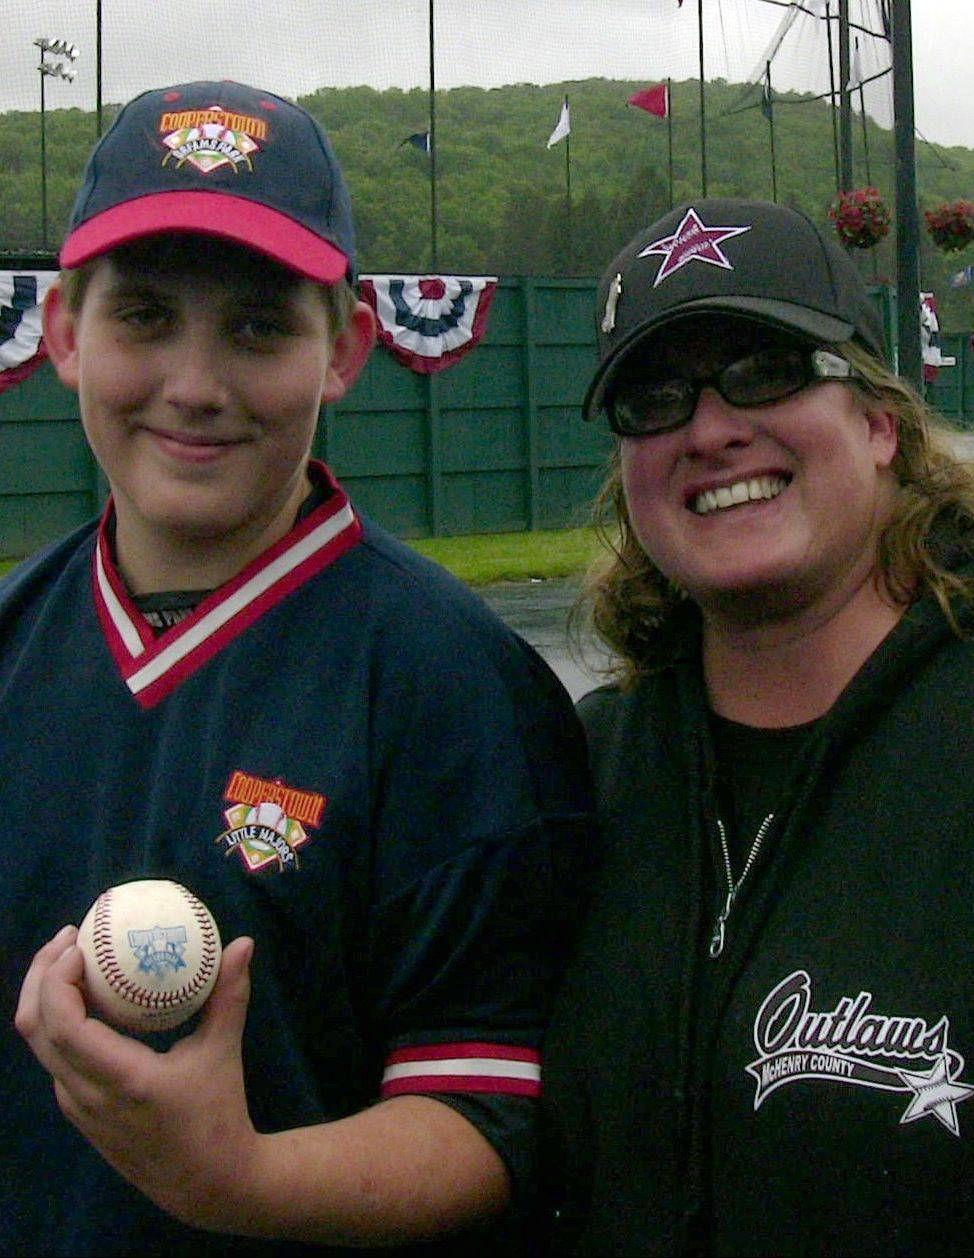 Mason Kamp, 12, of Algonquin with his mom Kathy Dozier and the ball he hit for a grand slam in her honor.